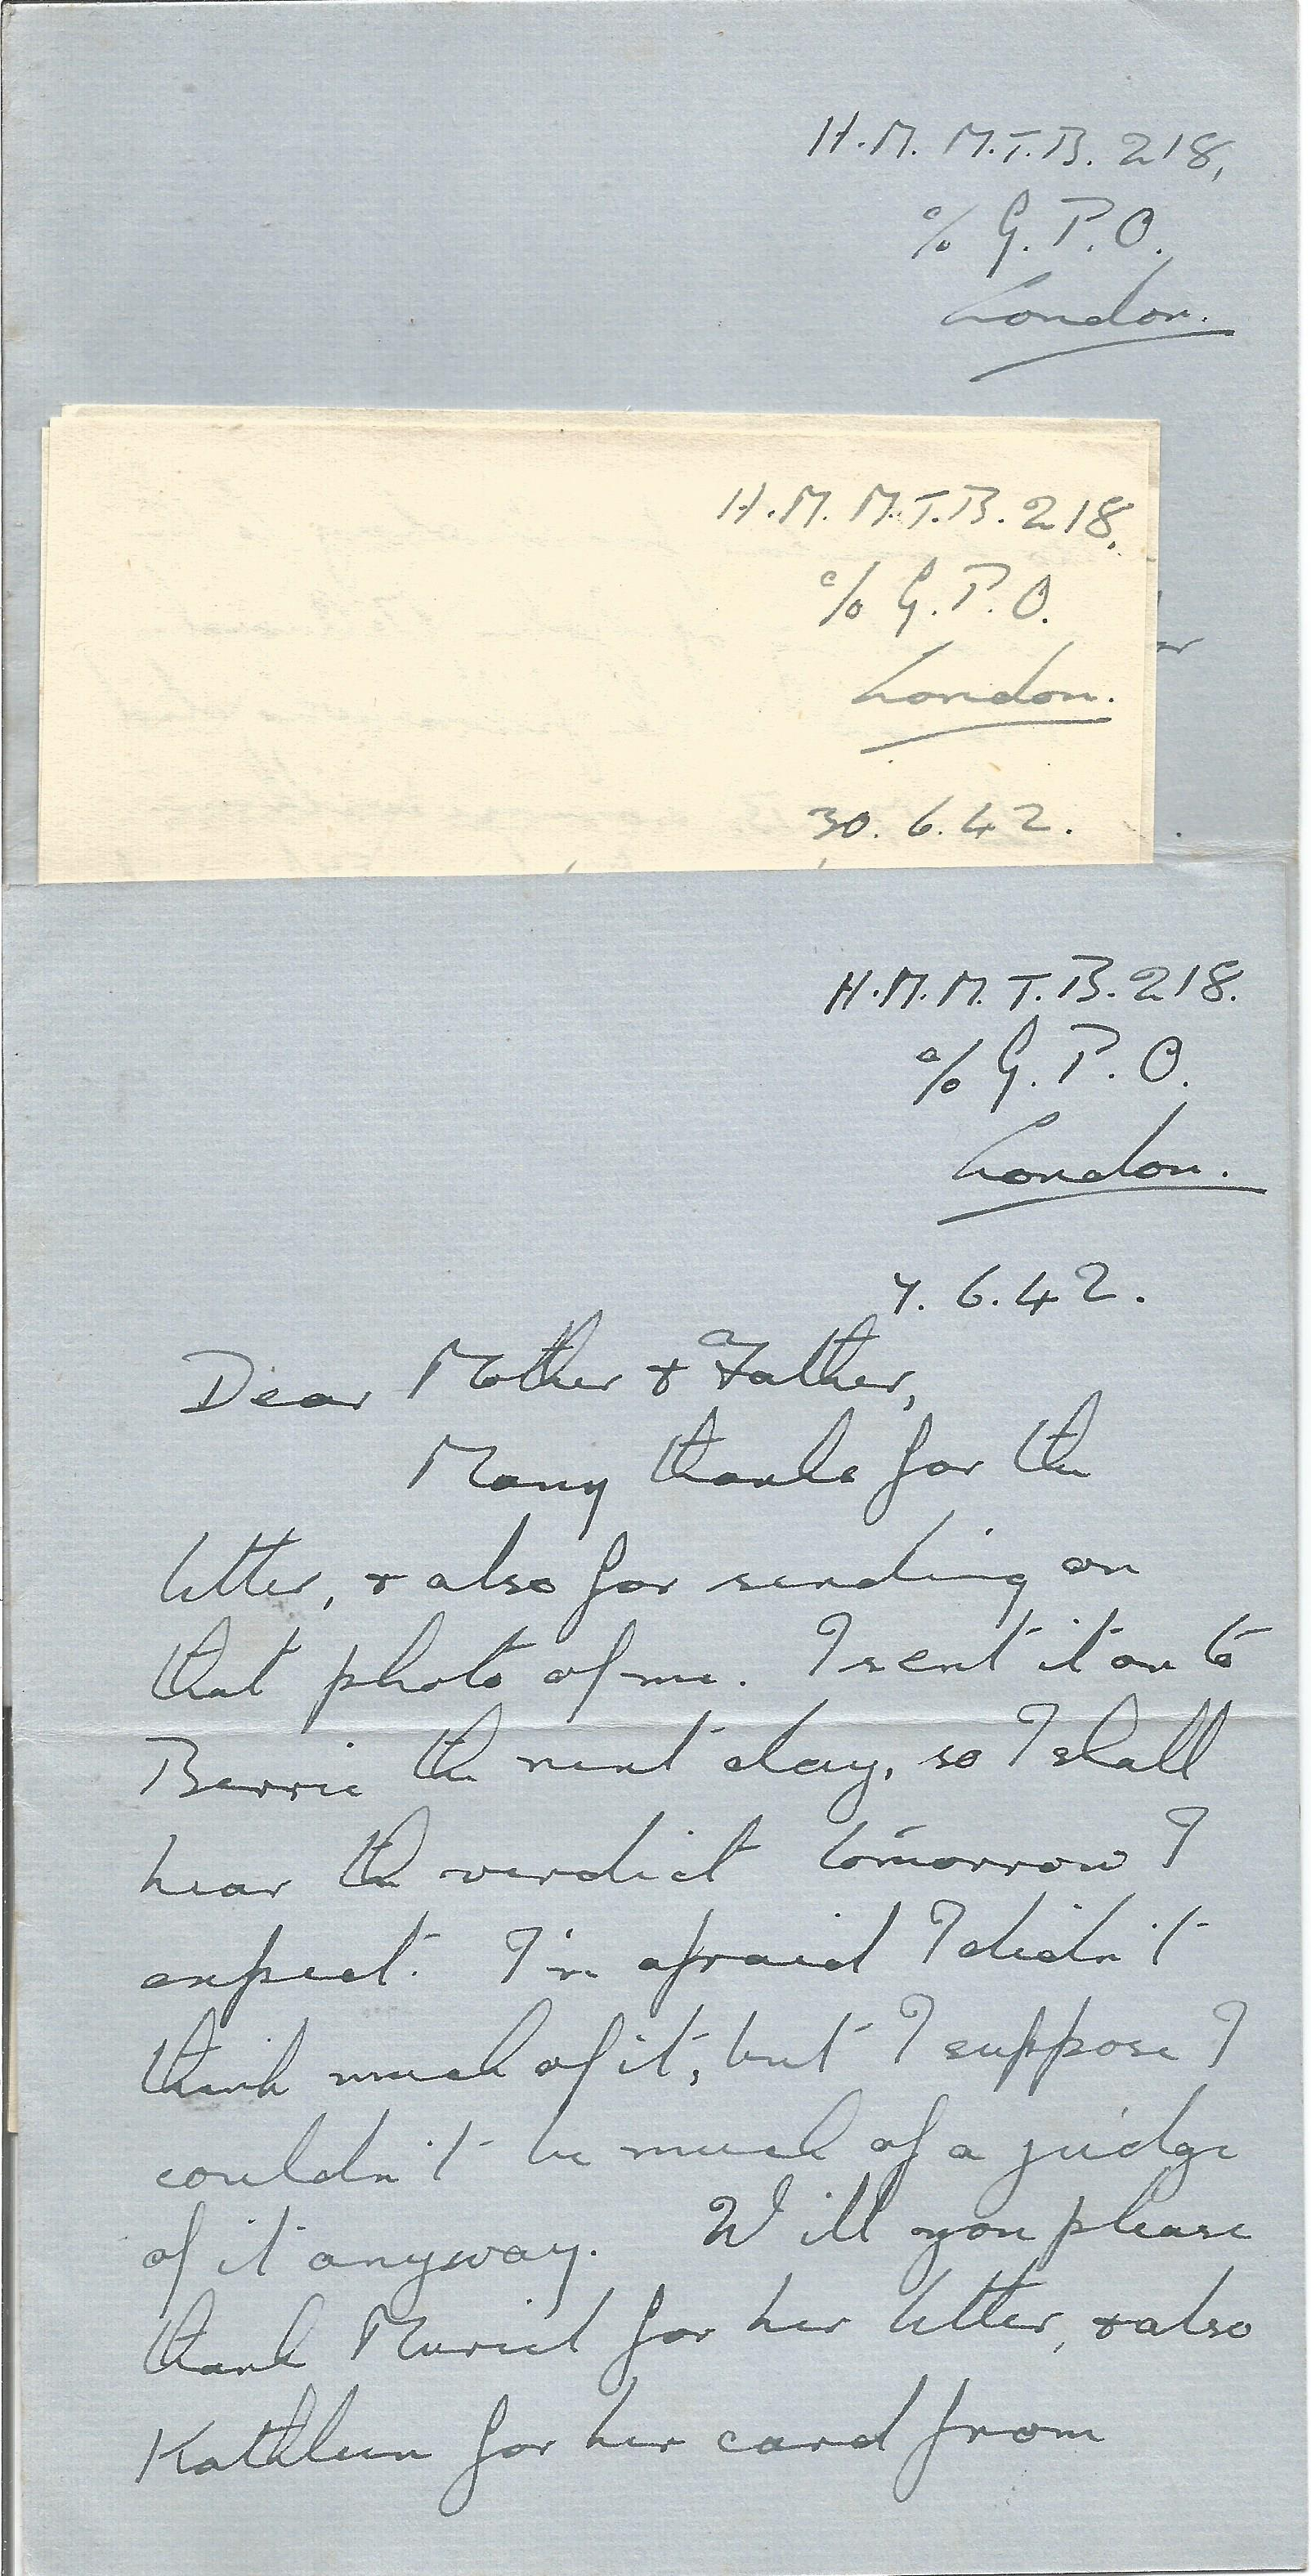 14 Hand written Letters from a Crew Member of H. M. Motor Torpedo Boat 218 with Interesting Content,